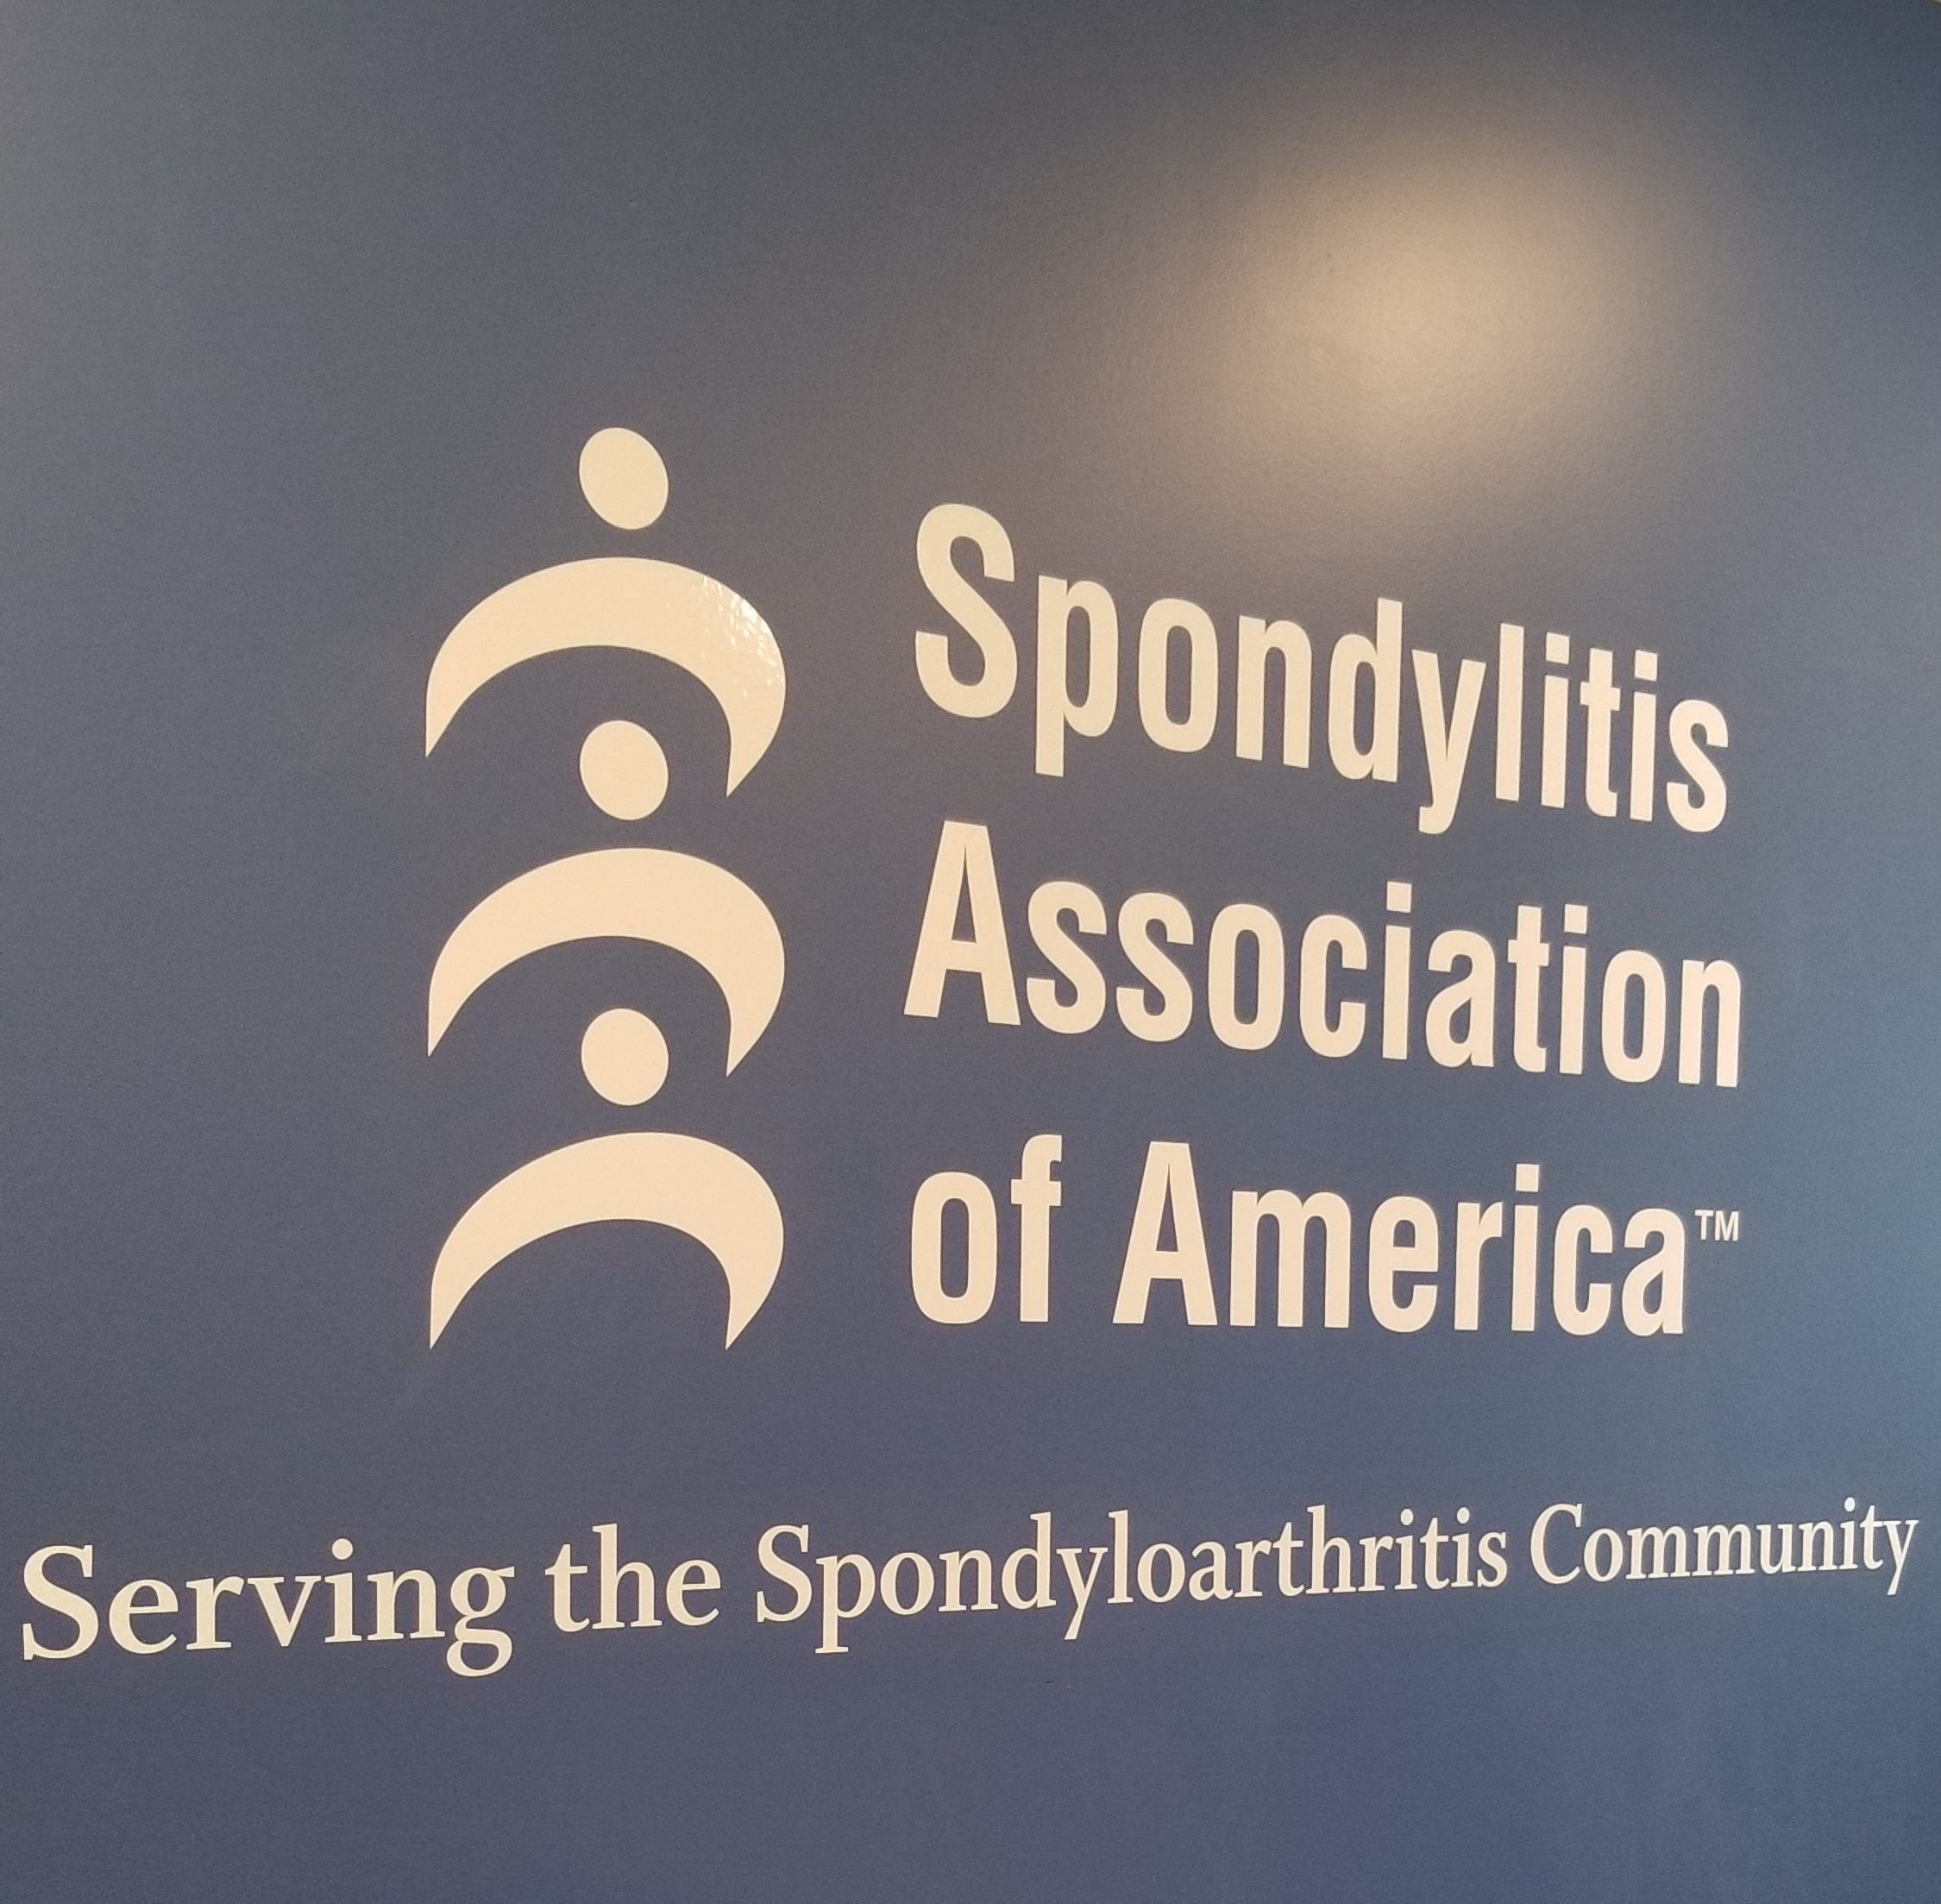 These are the wall graphics lobby sign for Spondylitis Association of America. With this, the Ventura nonprofit's office looks even more visually impressive.